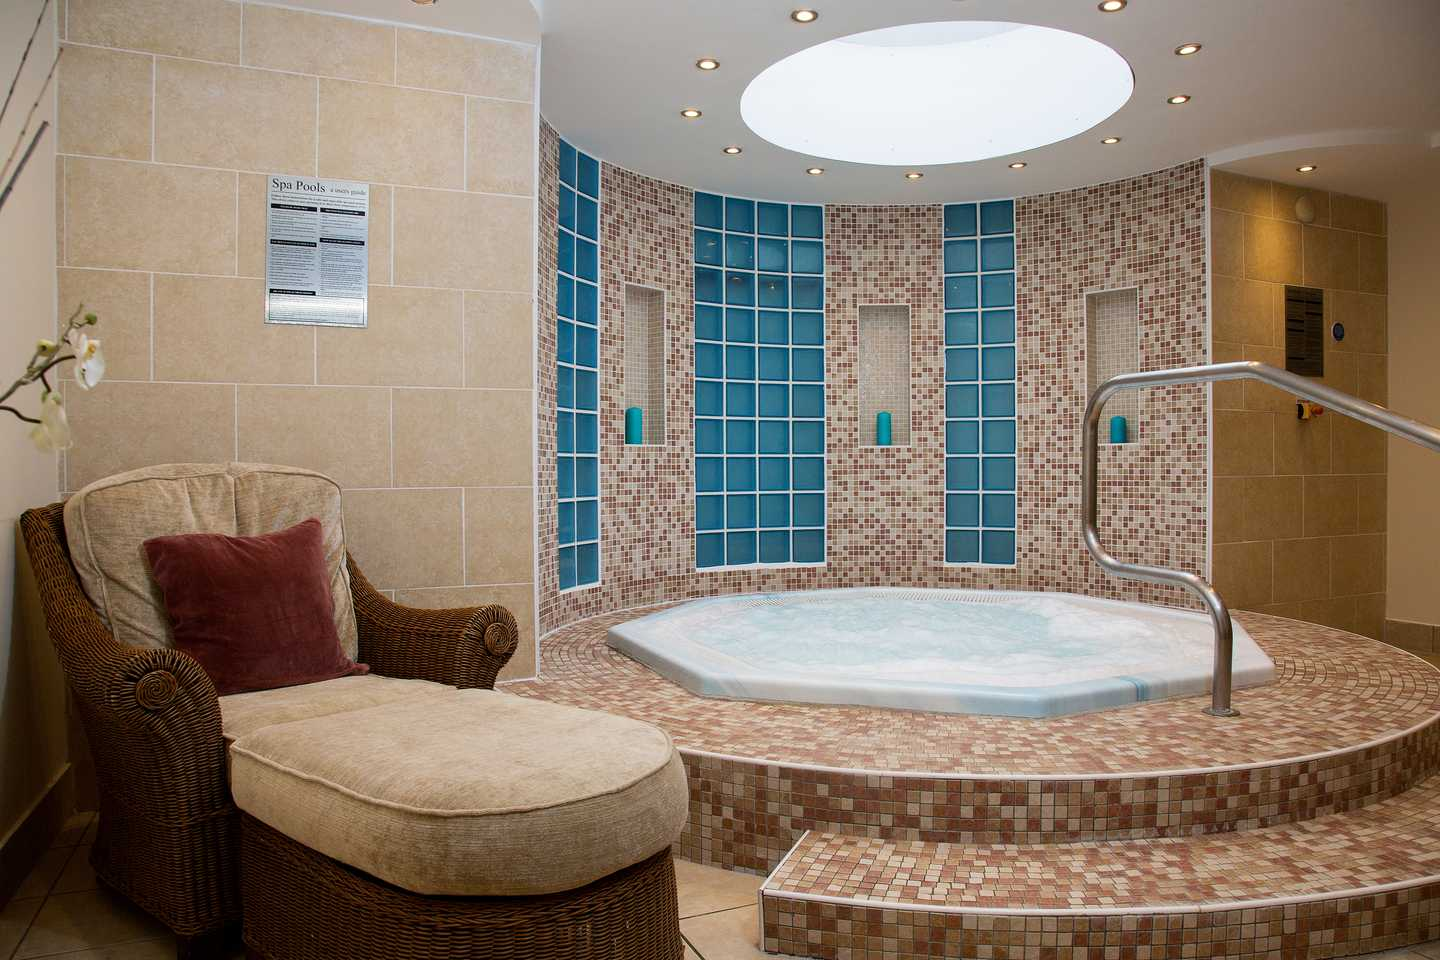 The spa at Rockley Park